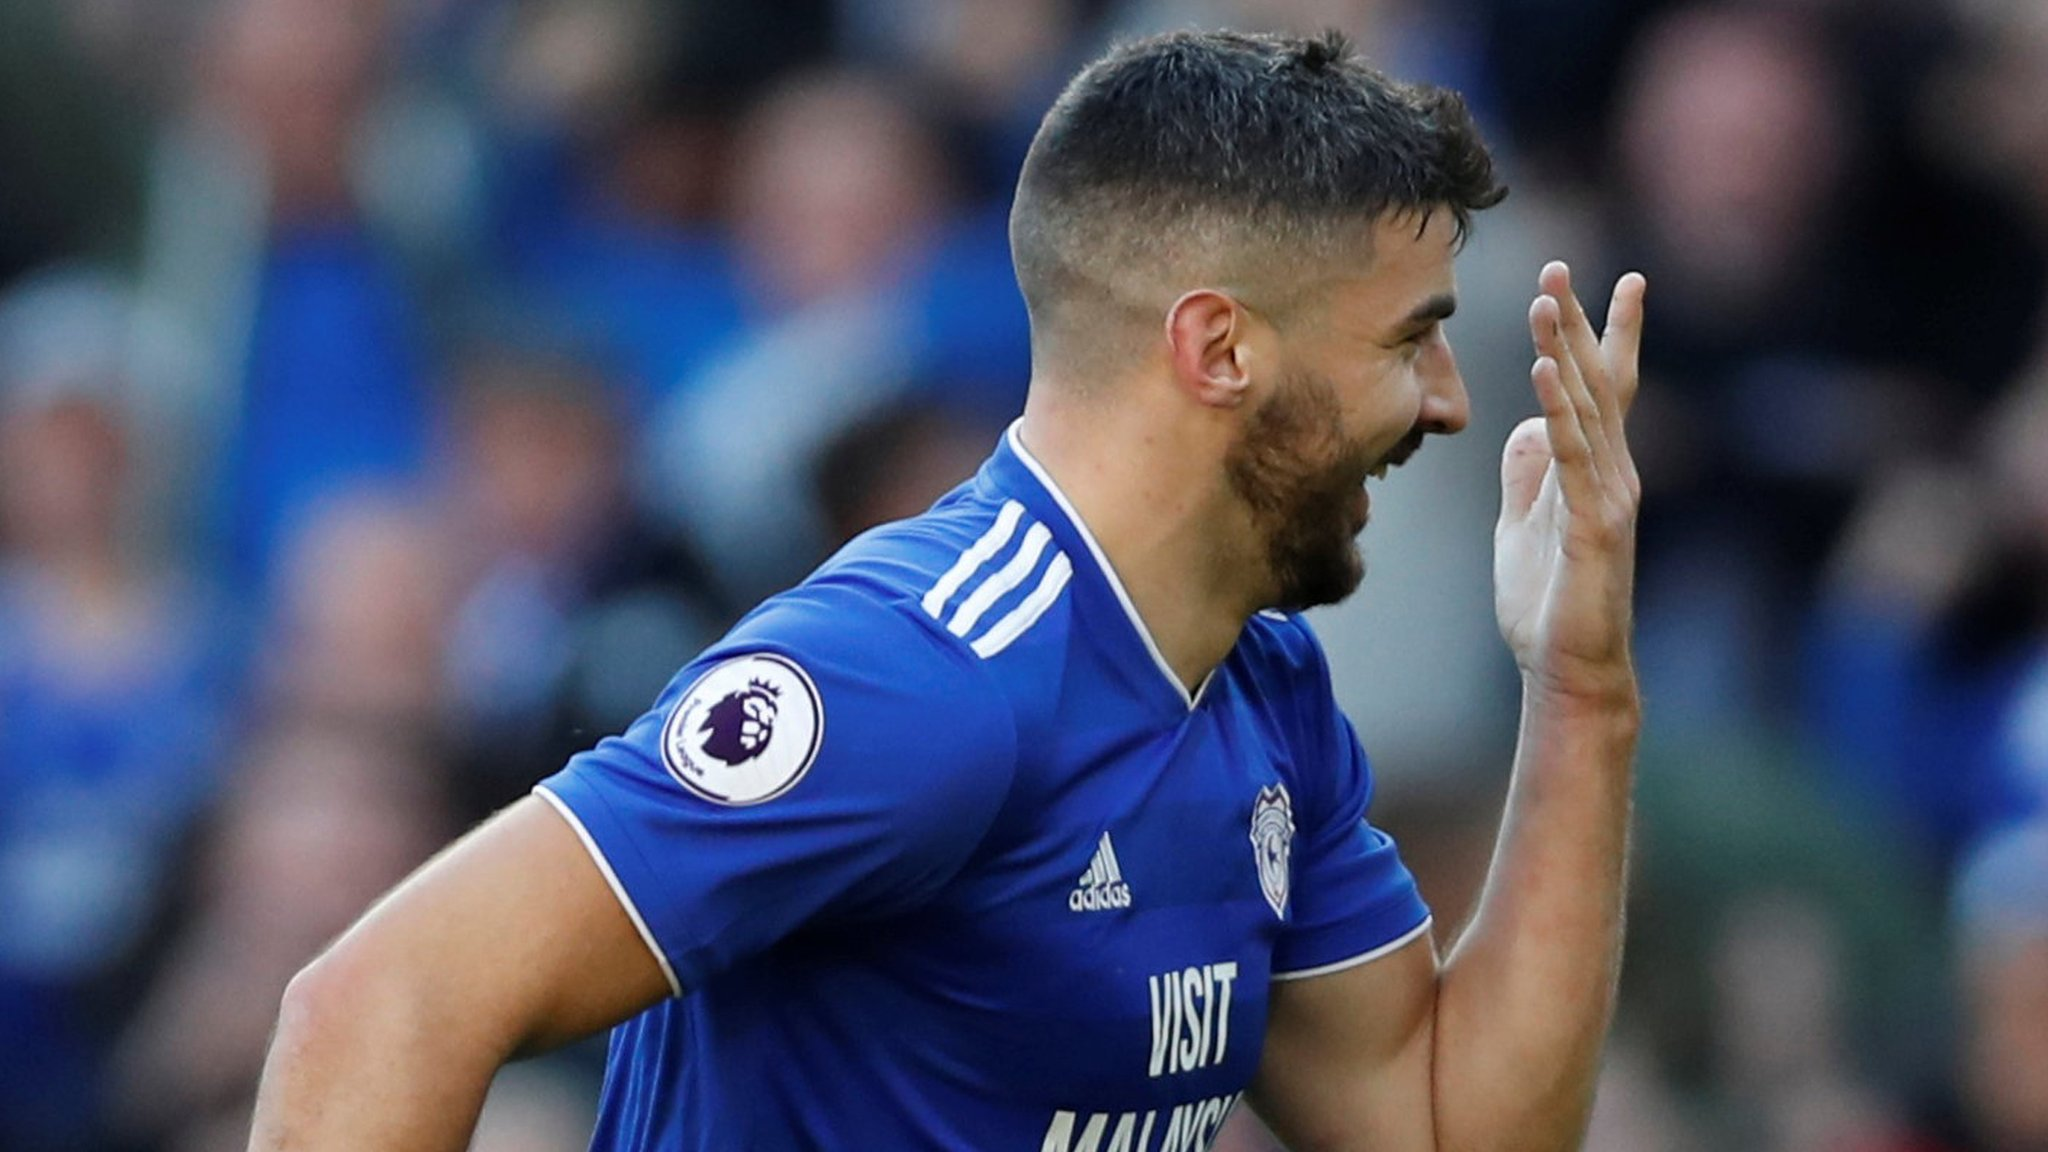 Fulham with 'so many defensive problems' as Cardiff claim first win